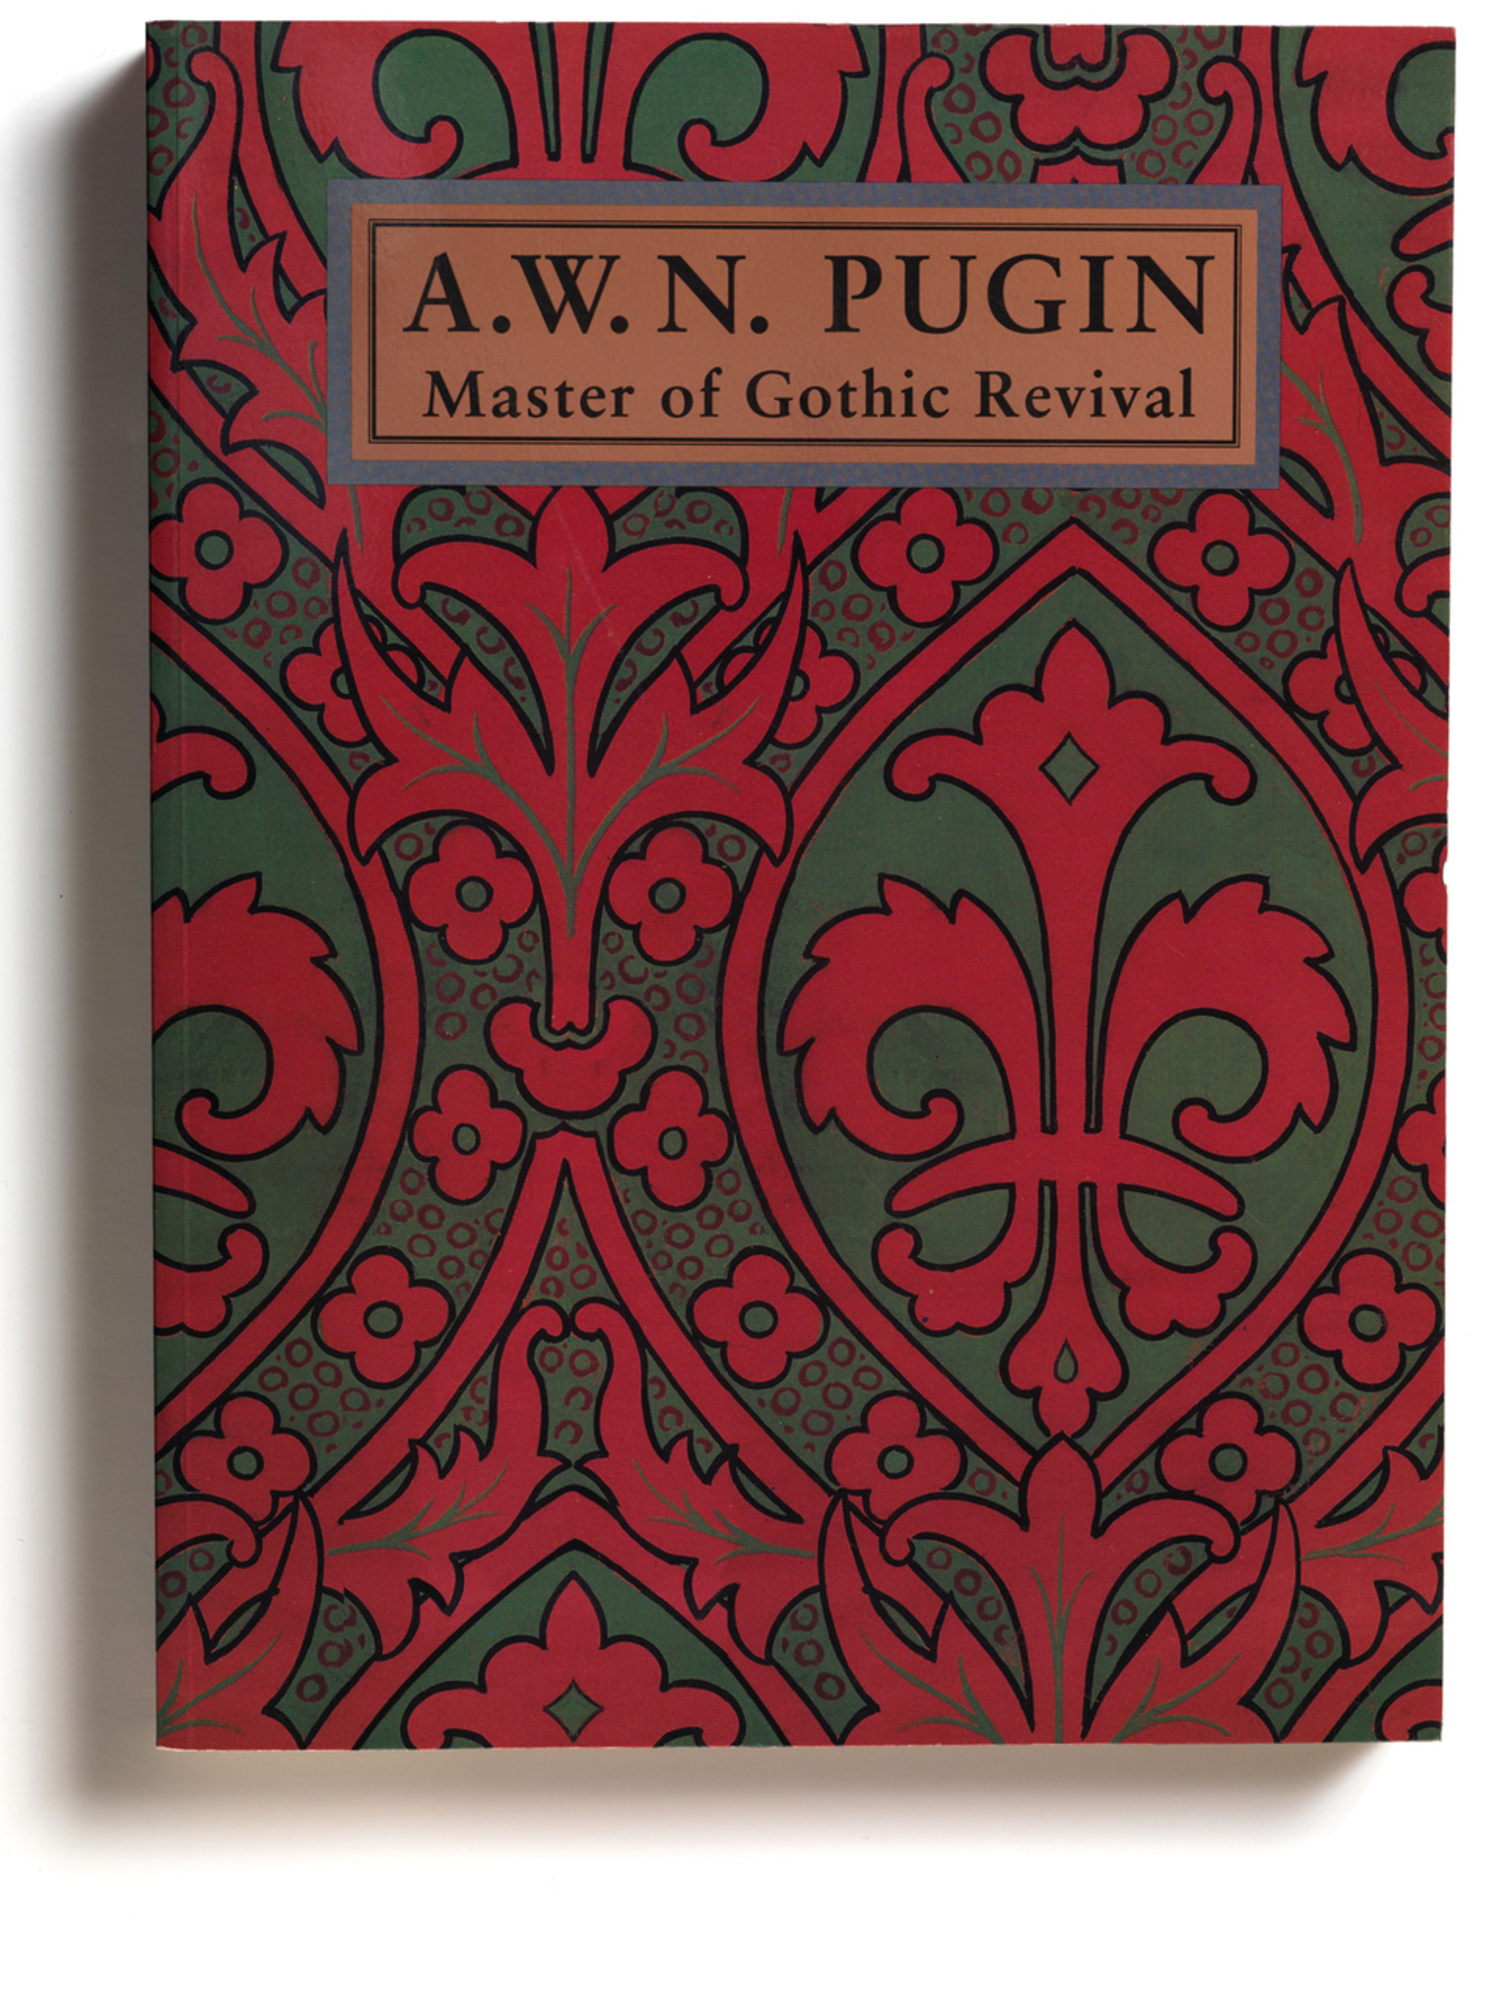 A.W.N. Pugin, Master of Gothic Revival - Bard Graduate Center